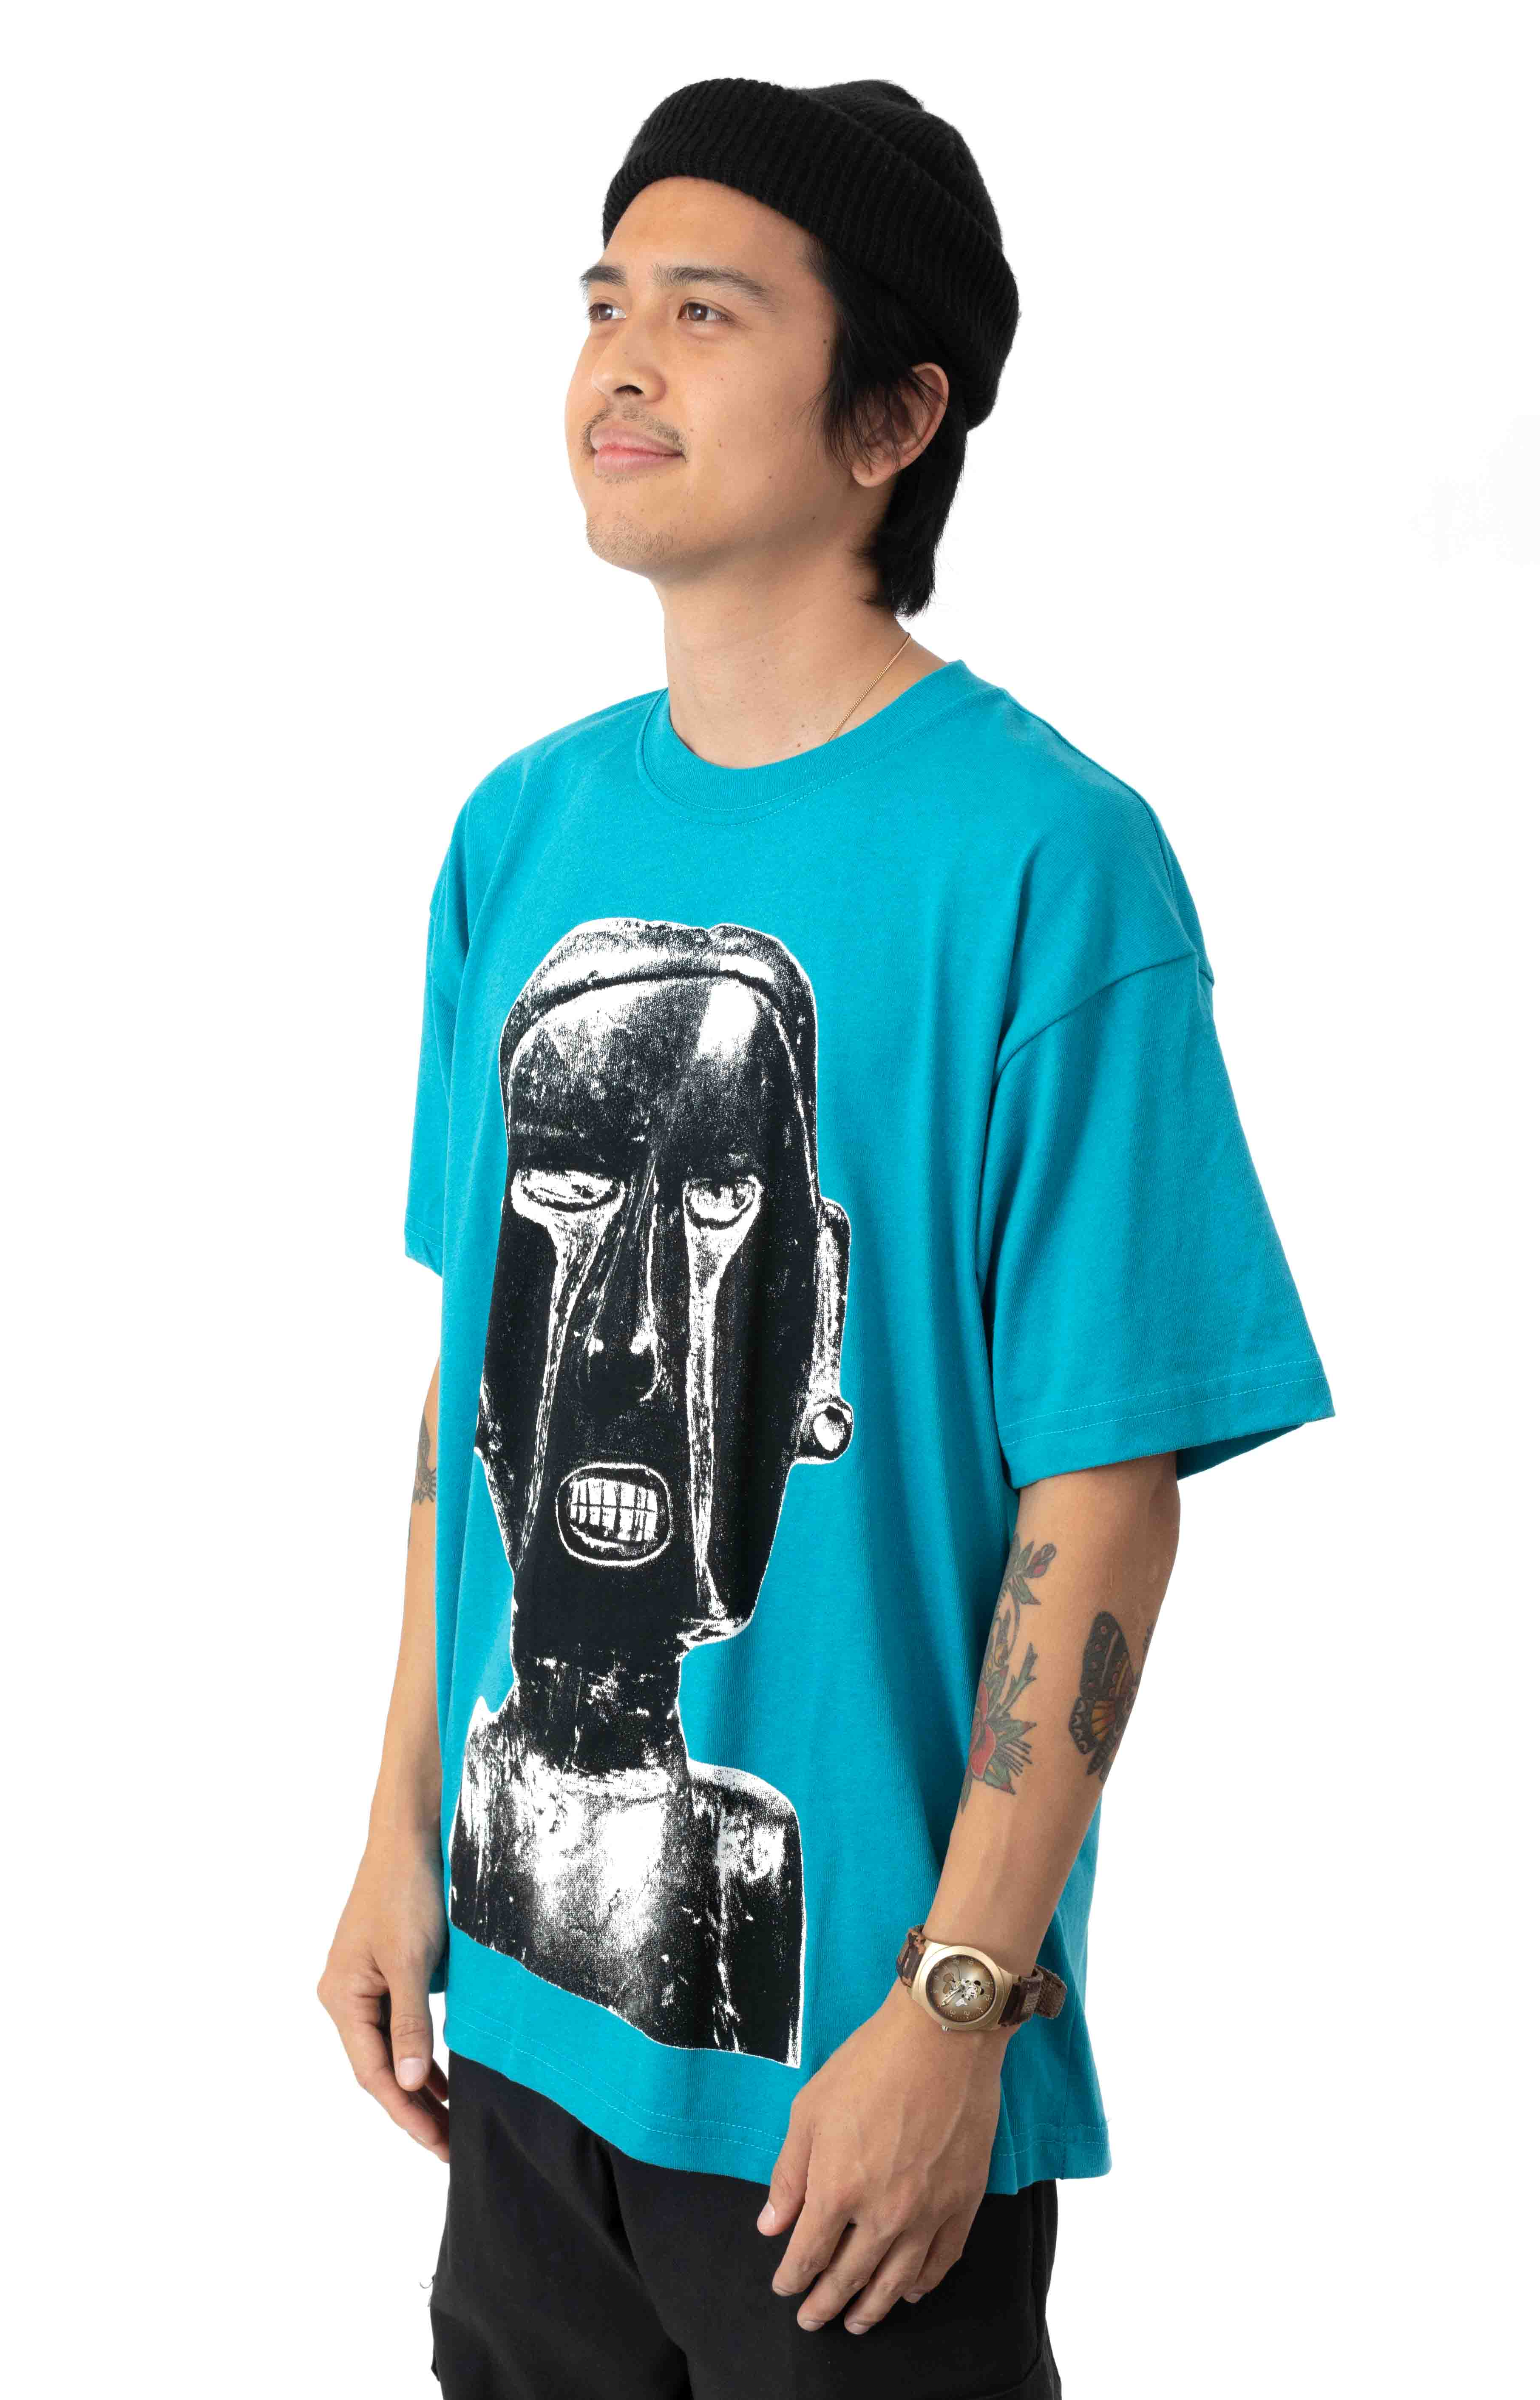 Earth Crisis T-Shirt - Turquoise  2